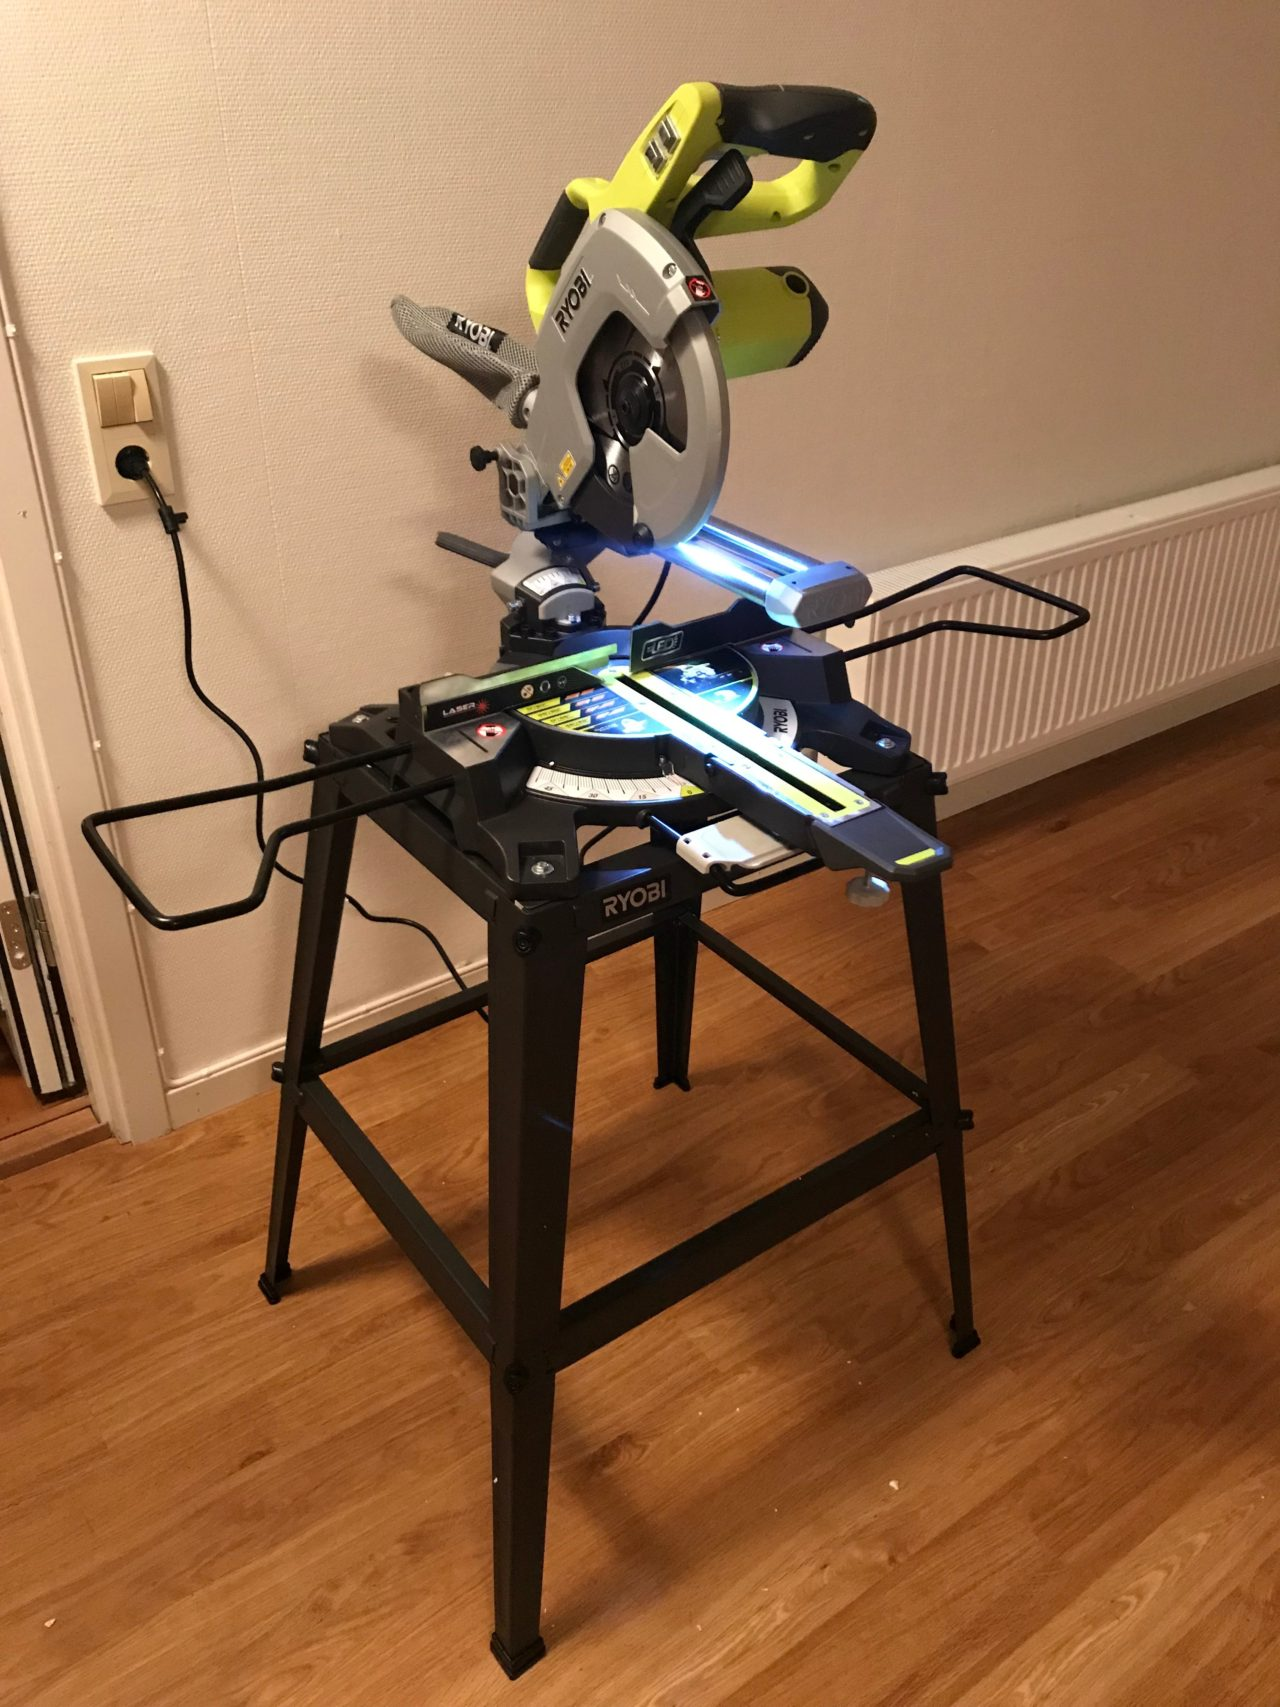 Power Tool Cutting Saw On A Stand